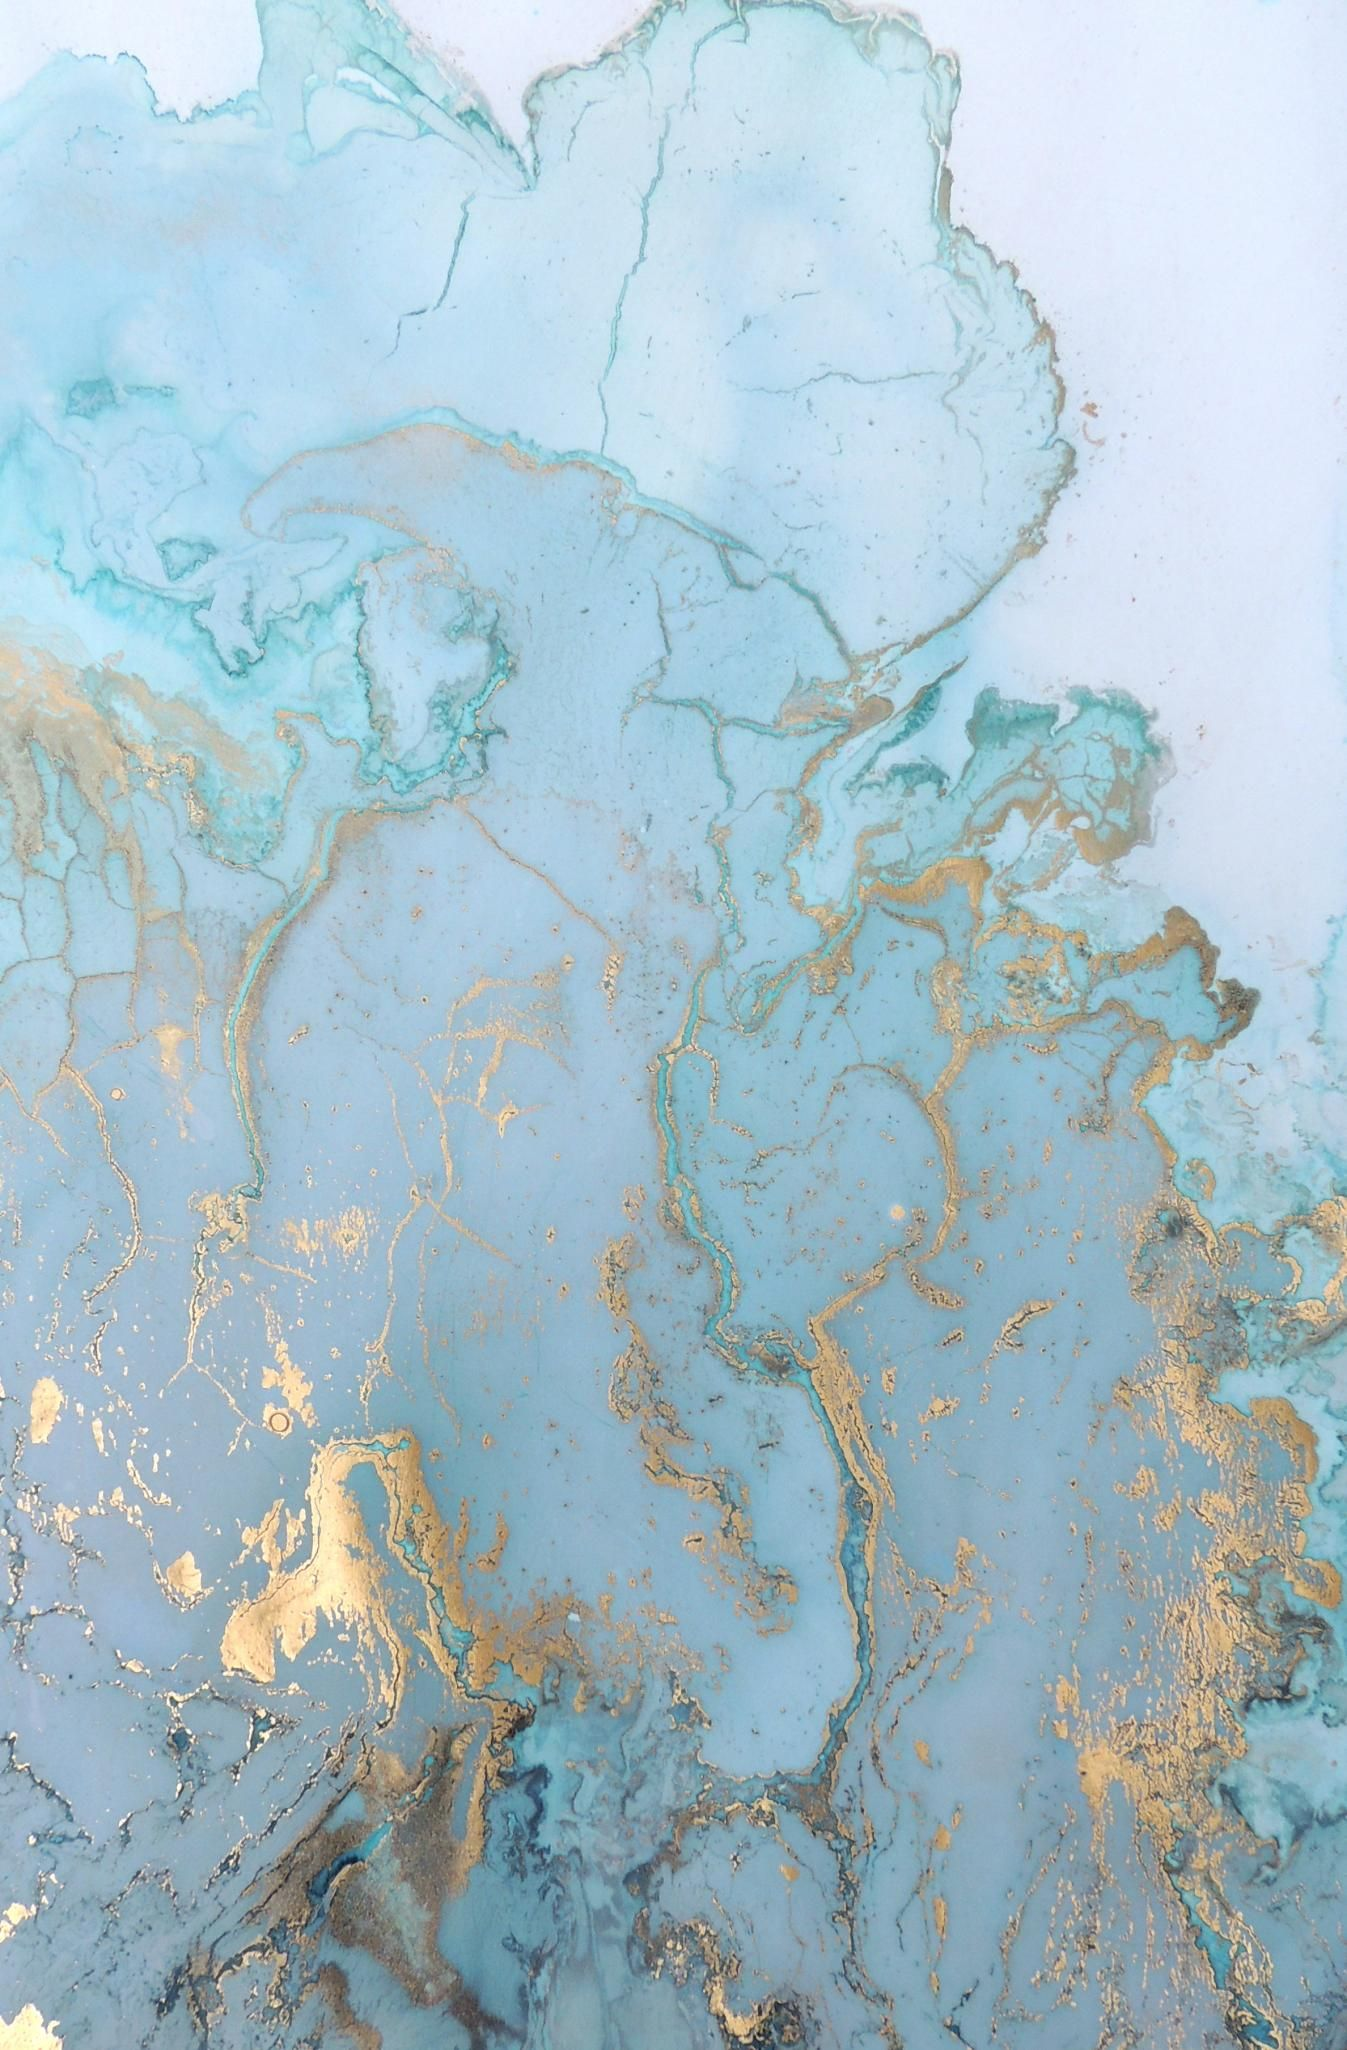 Gold Flecked Marble-esque Material Textures Painting Art Blue Wallpapers